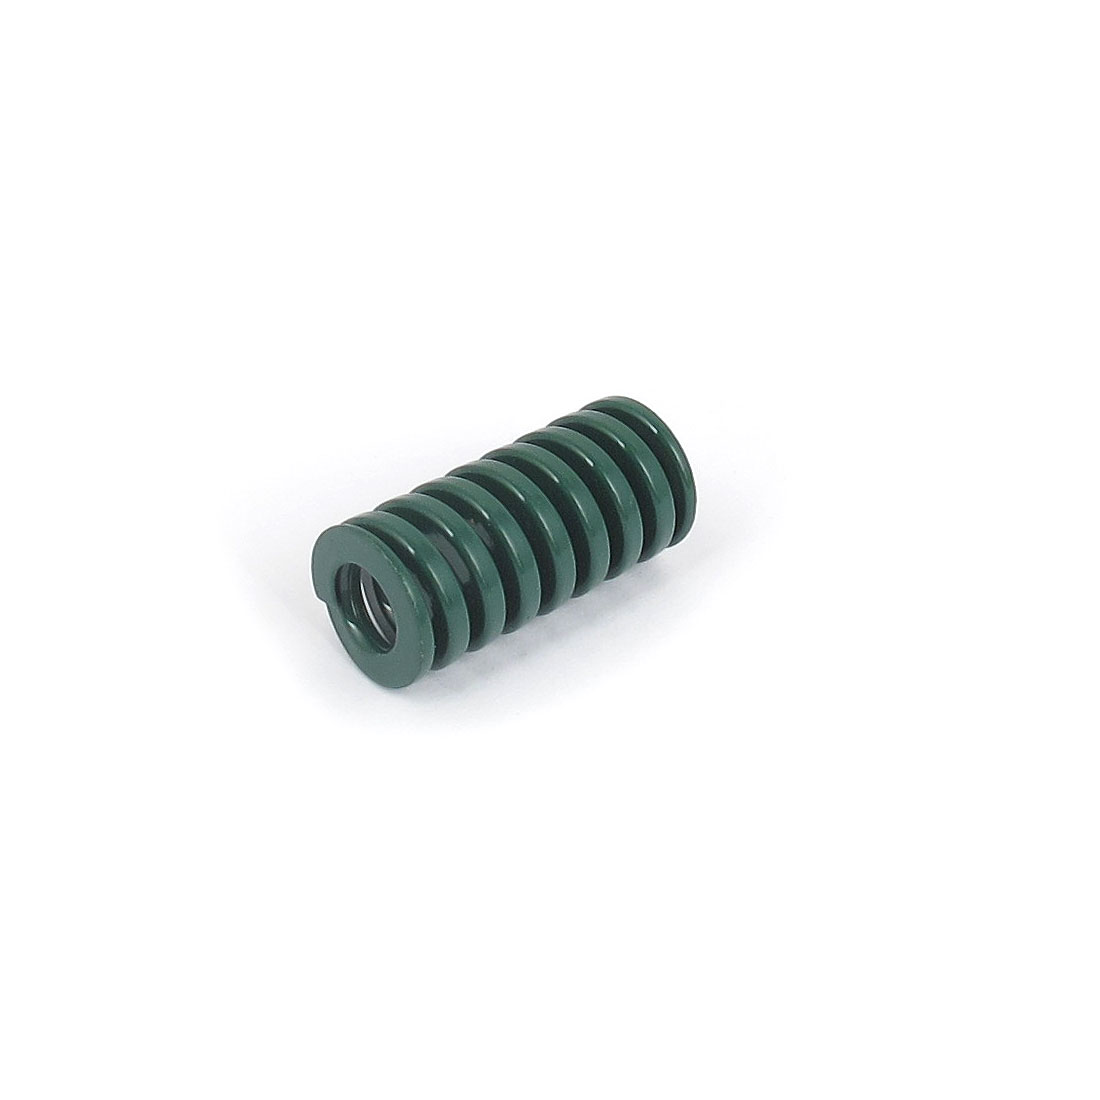 12mmx25mm Chromium Alloy Steel Heavy Load Die Spring Green